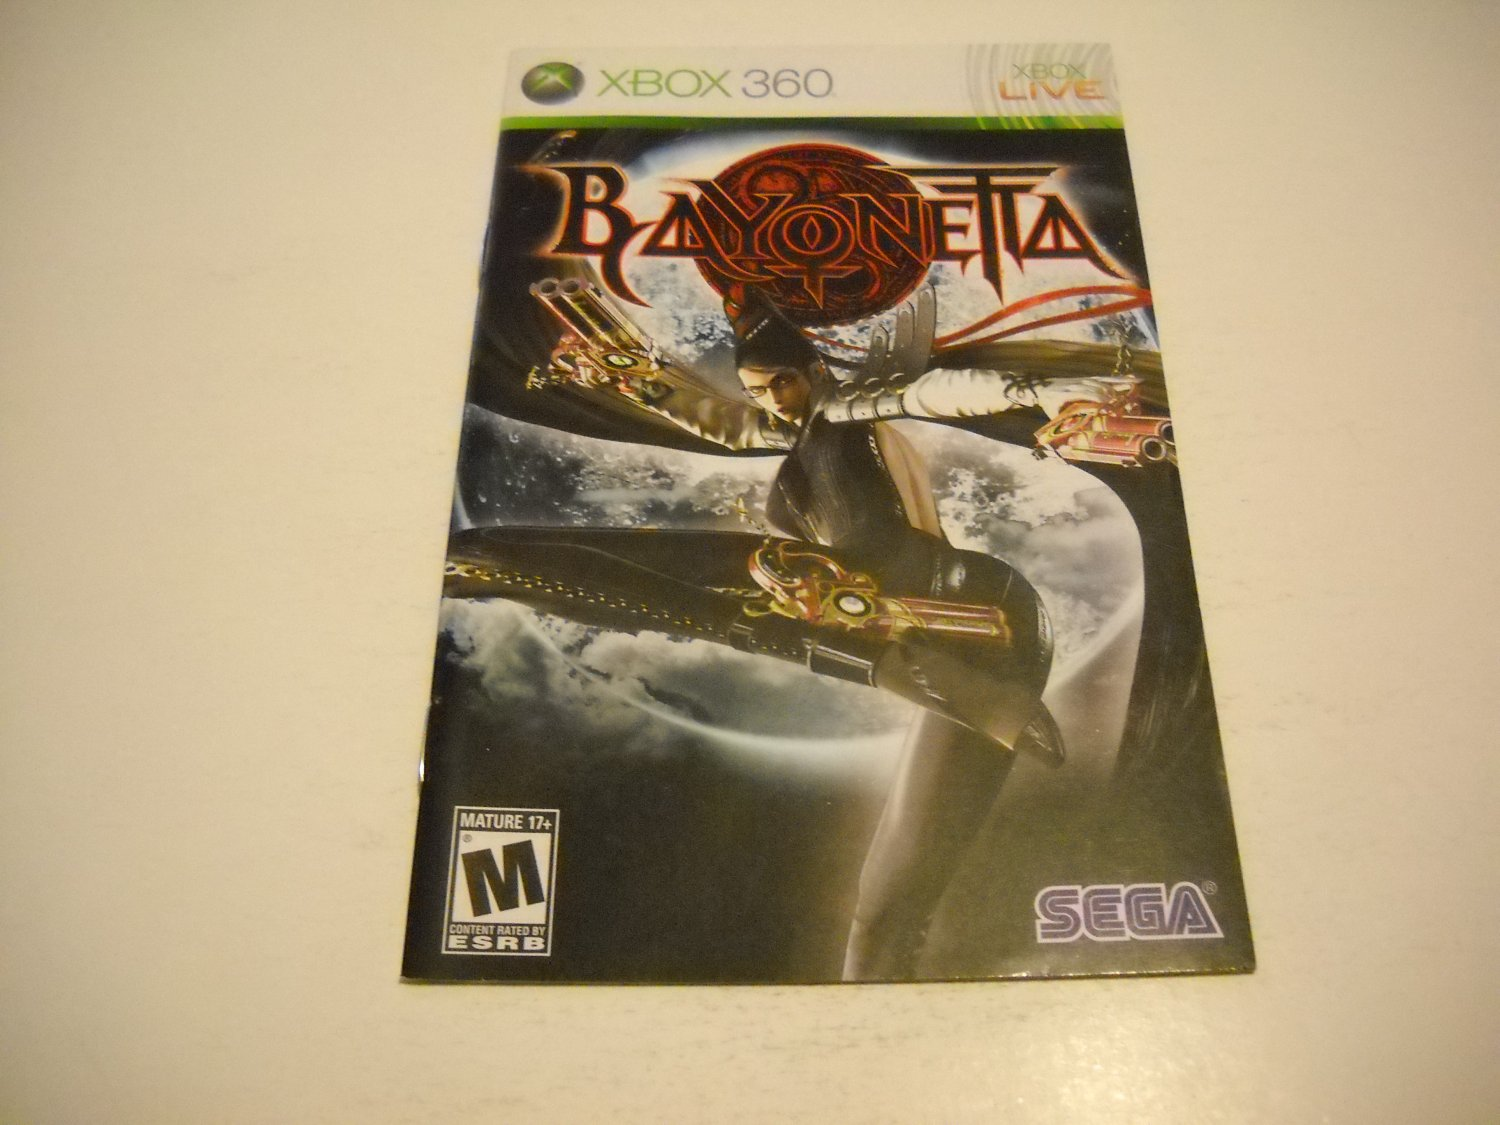 Manual ONLY ~  for Bayonetta   - Xbox 360 Instruction Booklet